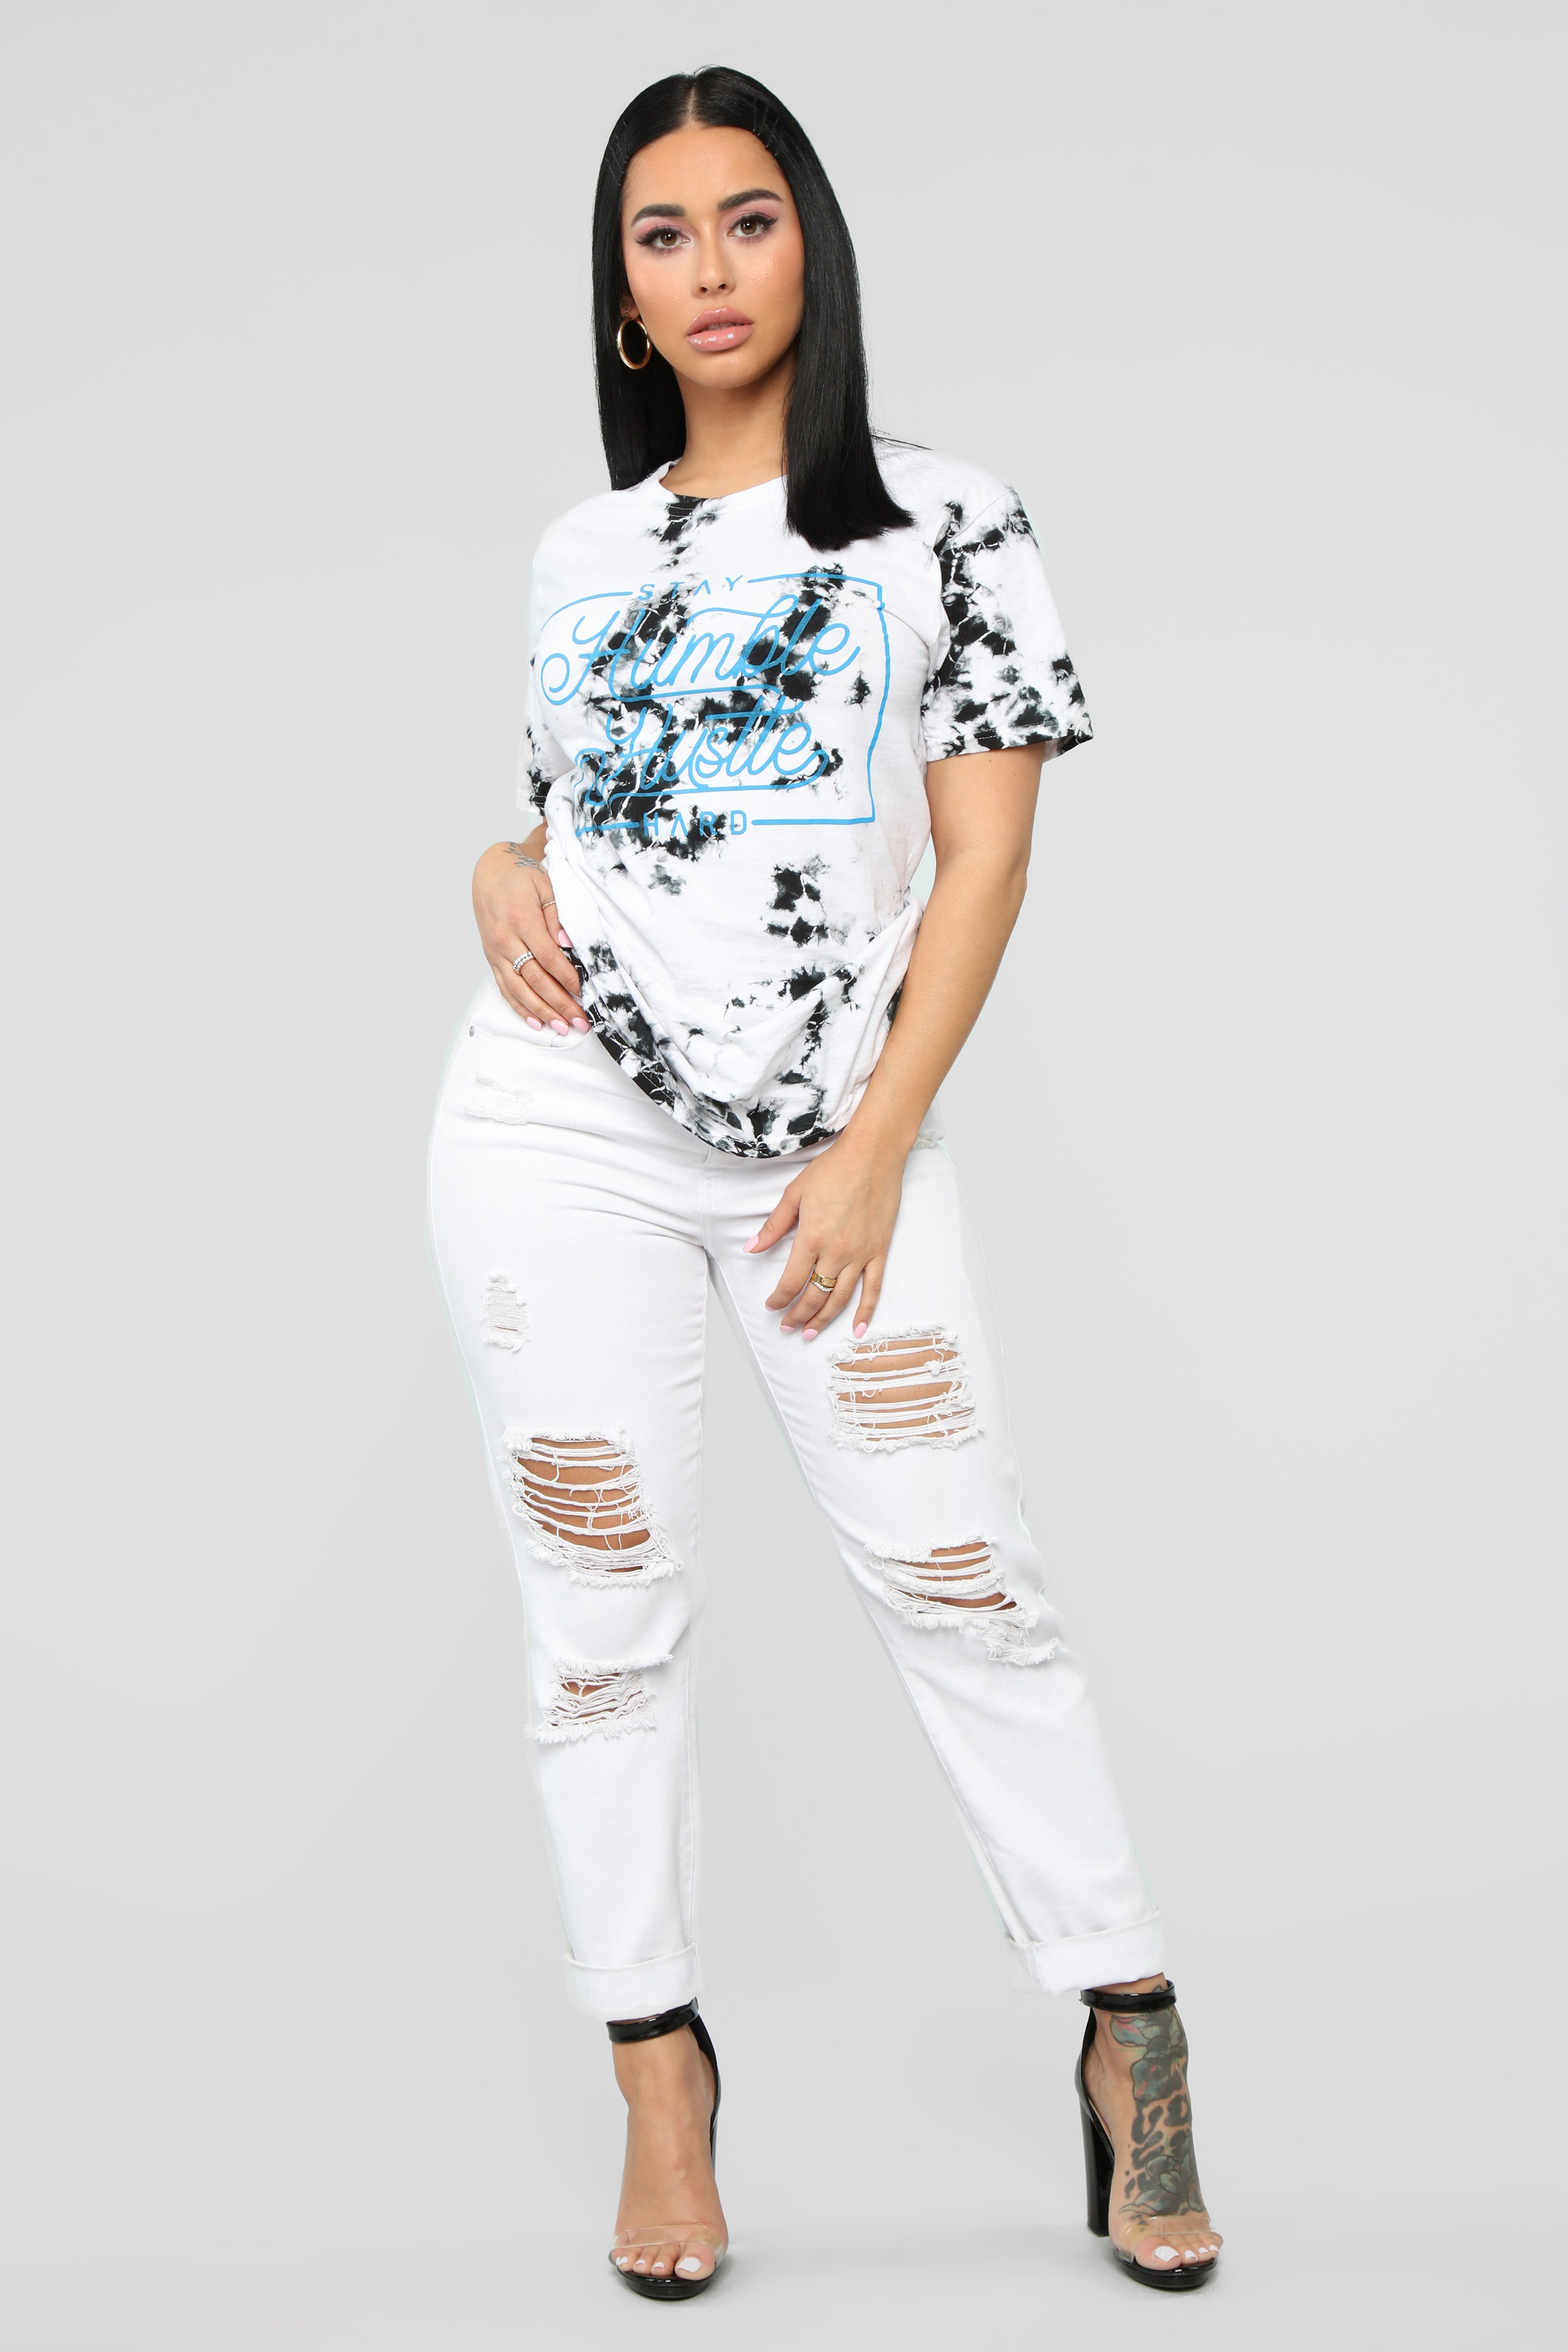 f7613644f04 Stay Humble And Hustle Tunic Top - White/Black